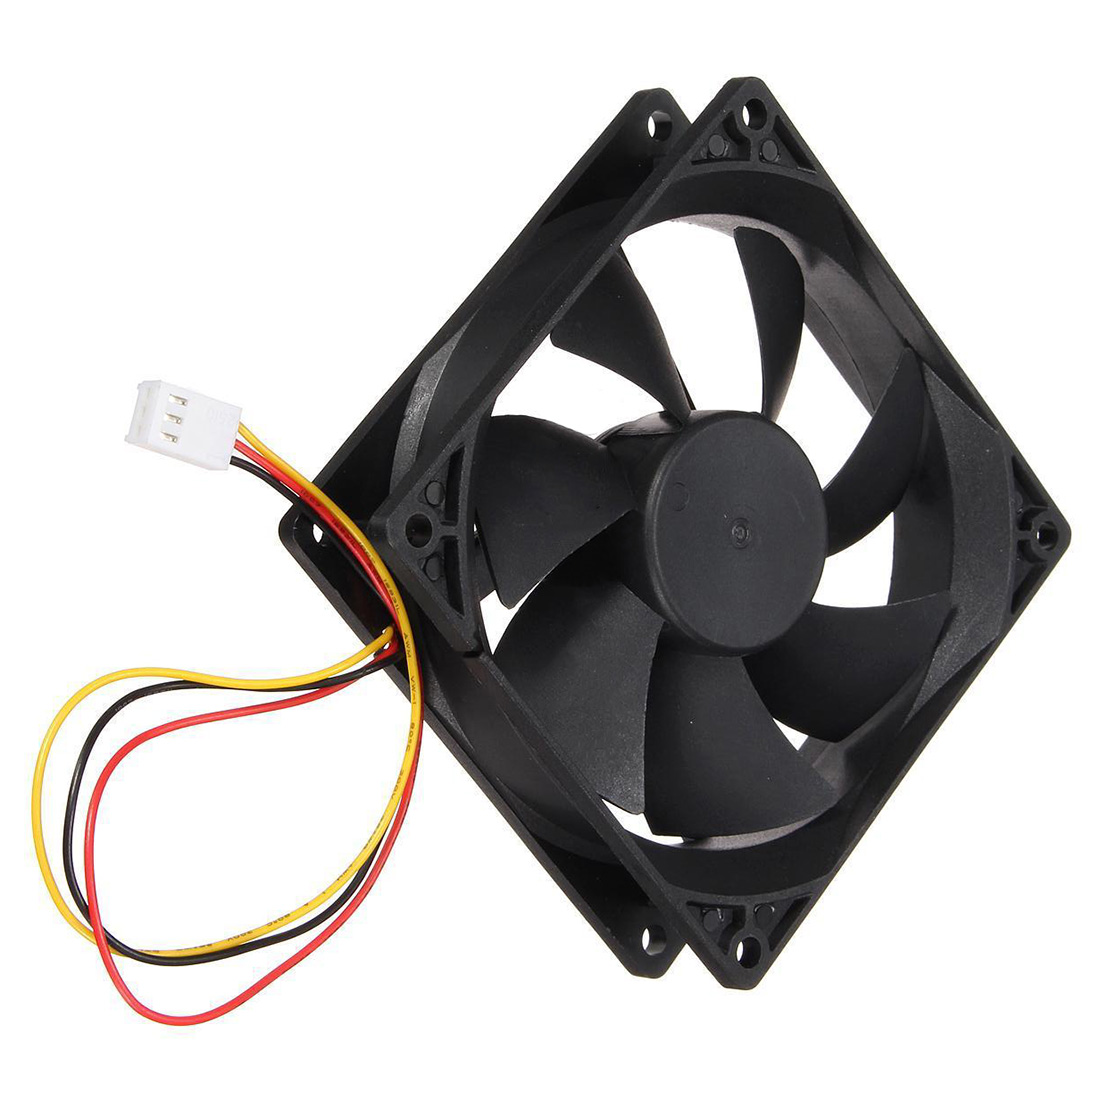 3 Pin 90mm 25mm Cooler Fan Heatsink Cooling Radiator For Computer PC CPU 12V электромеханическая швейная машина vlk napoli 2100